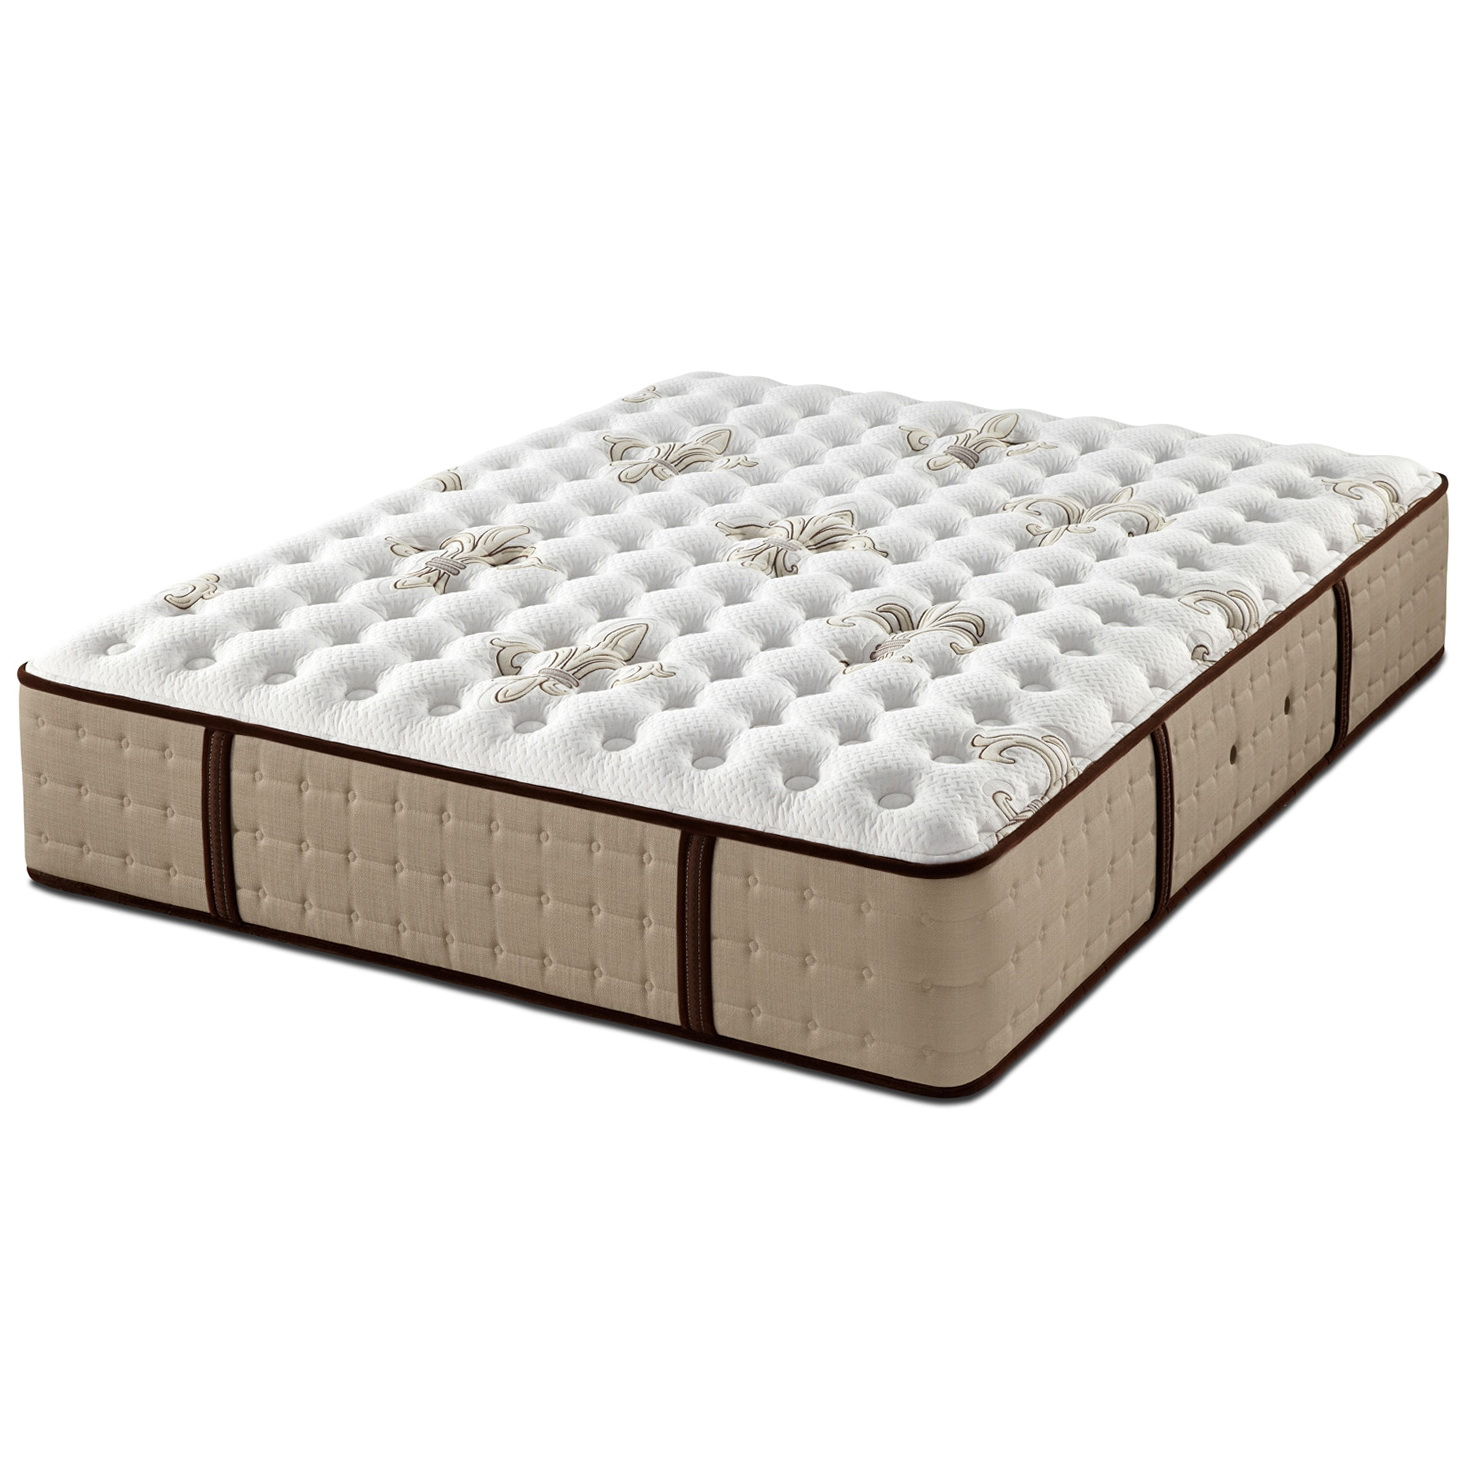 Sealy Posturepedic Cushion Firm Queen Mattress Set